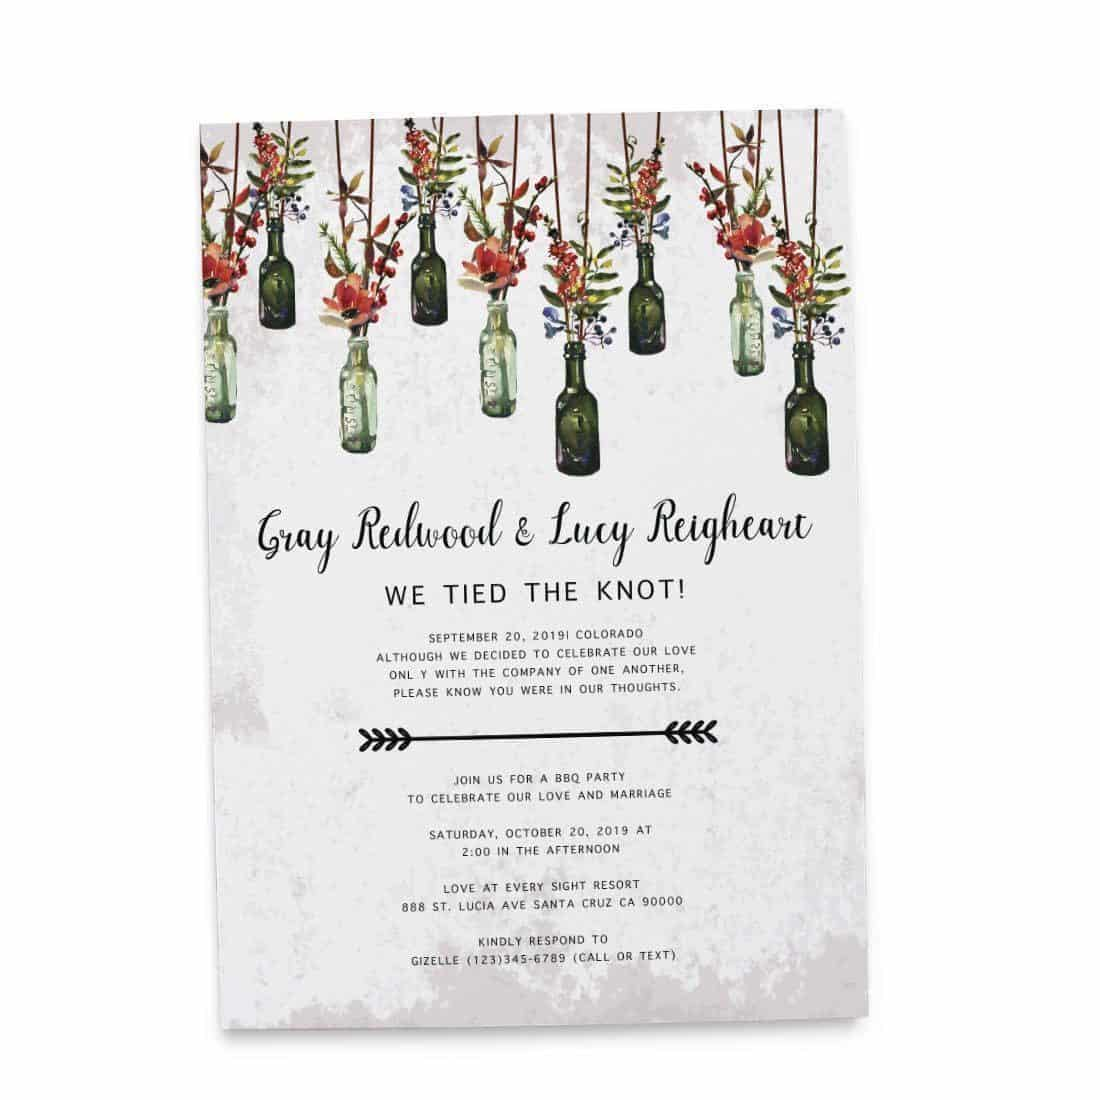 Rustic We Tied The Knot BBQ Casual Party Invitation Cards, Elopement ...